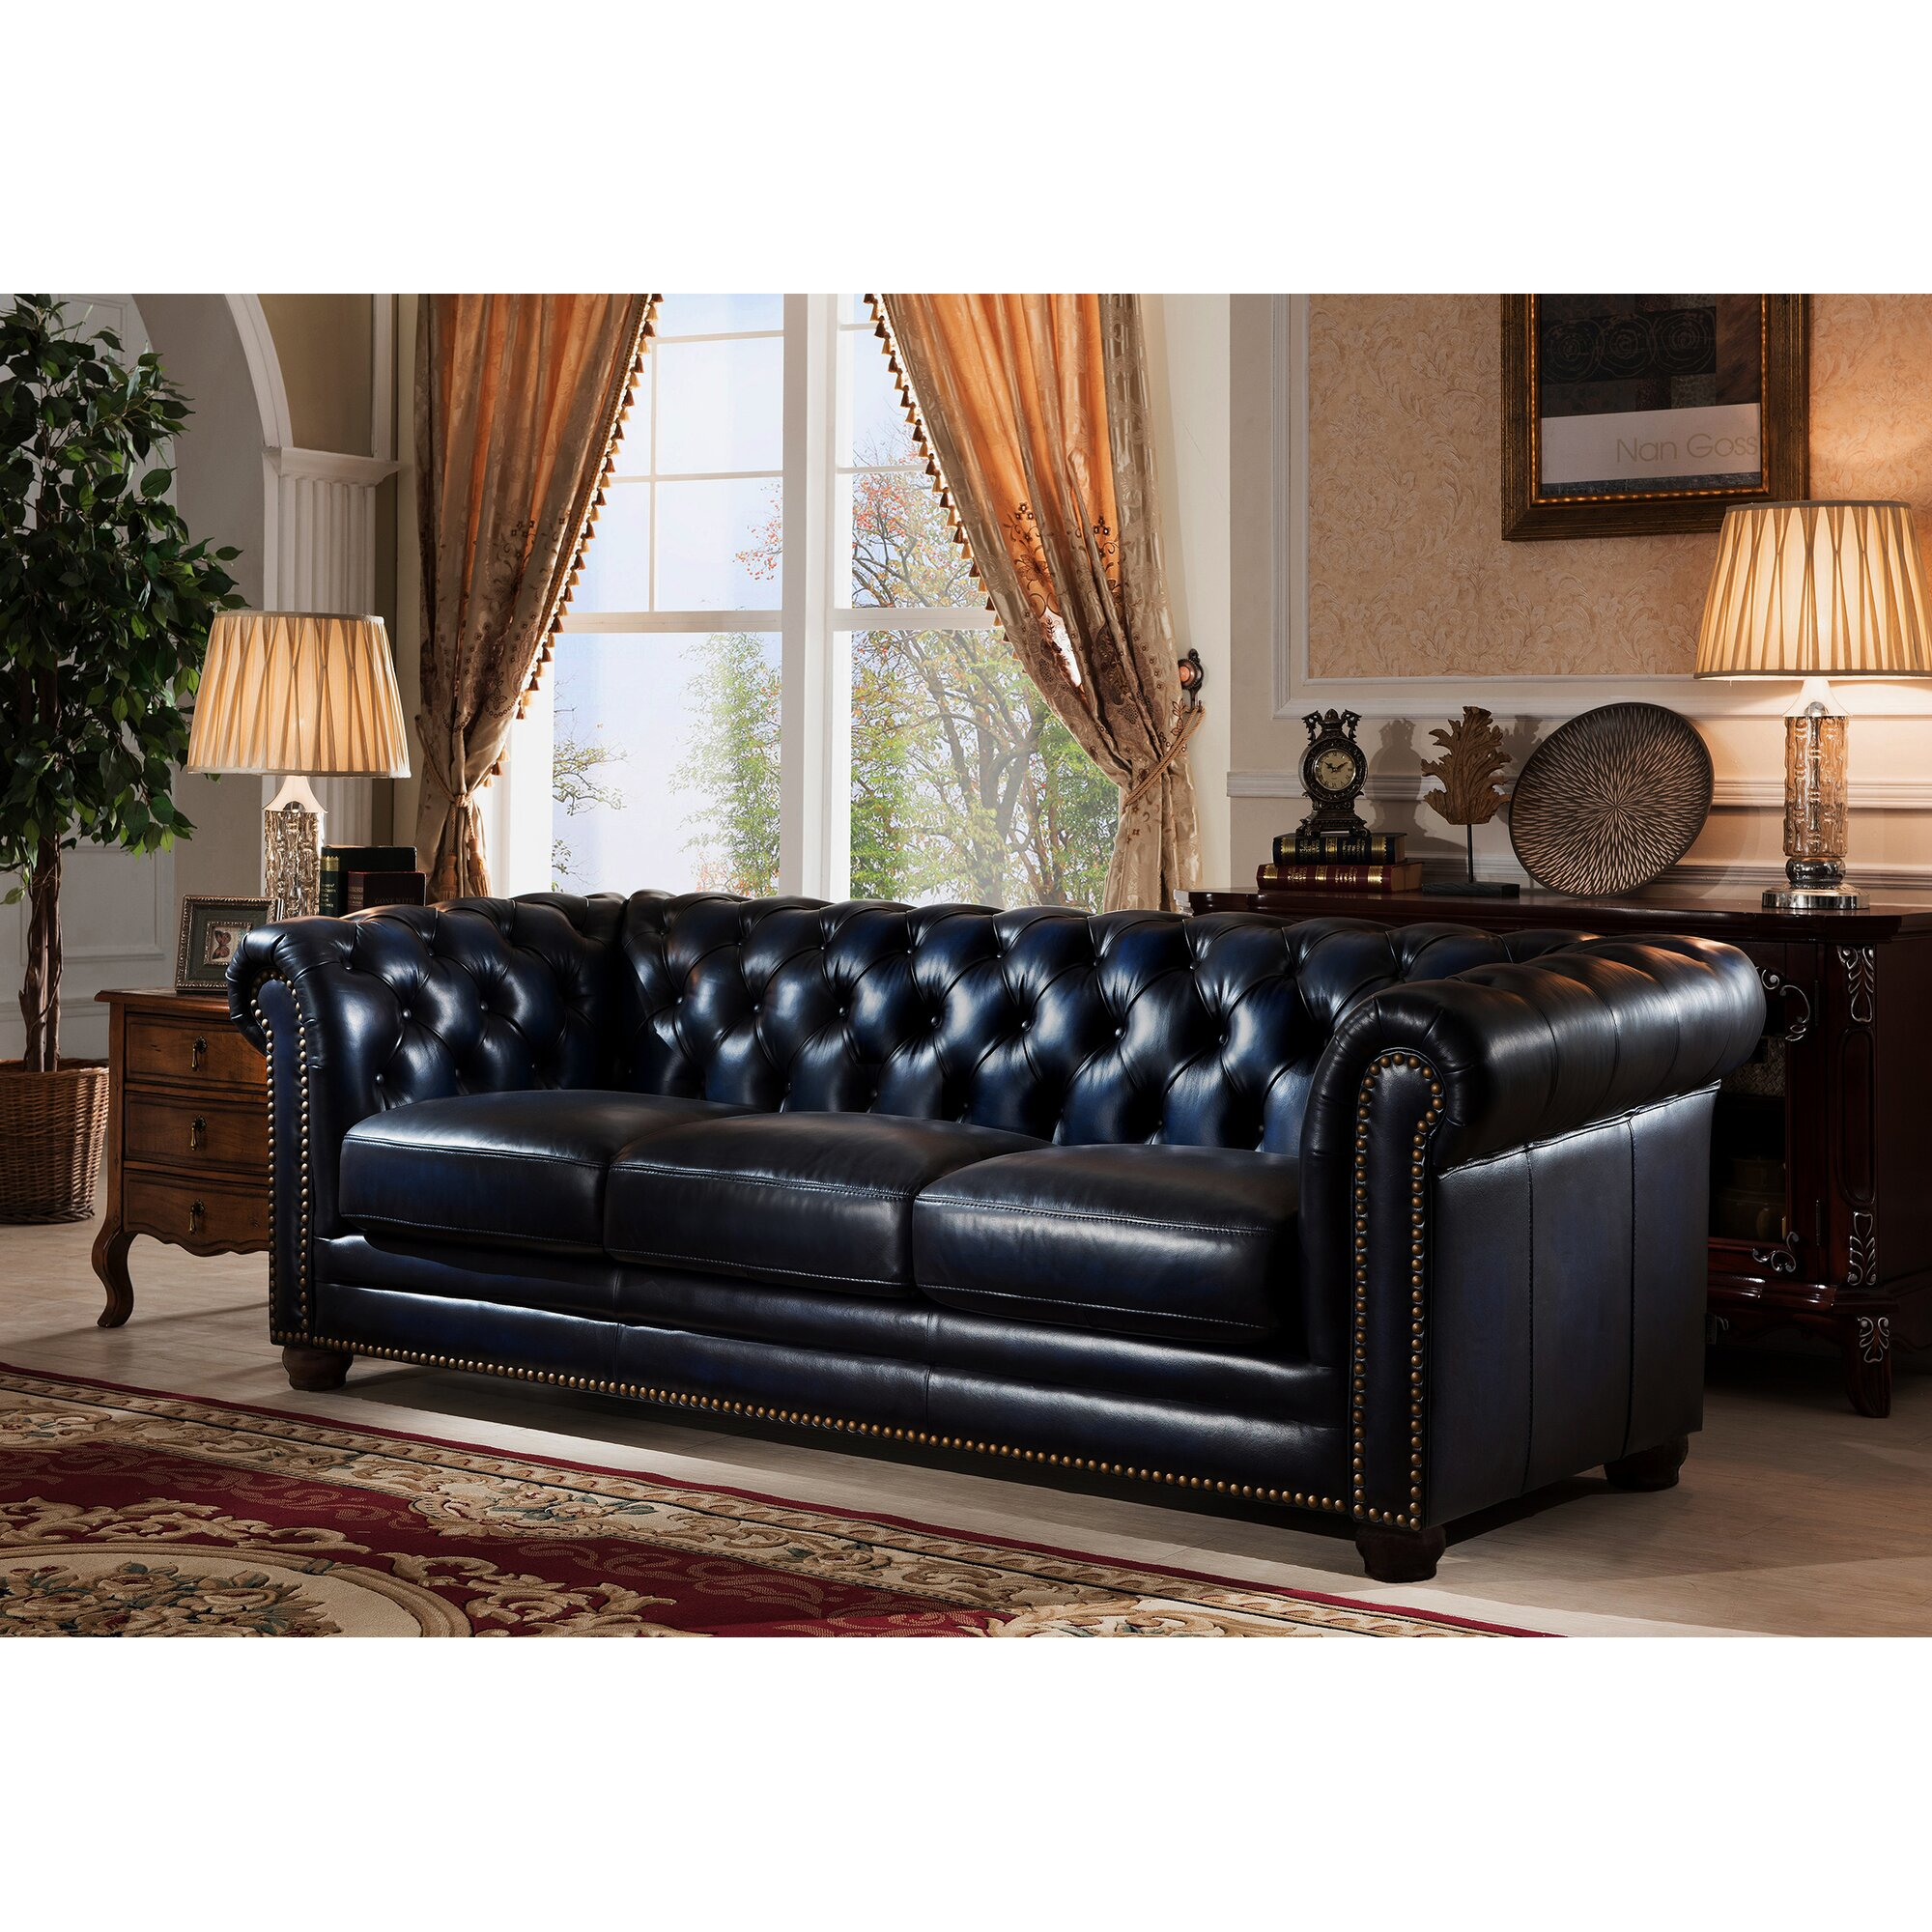 amax nebraska chesterfield genuine leather sofa and chair set. Black Bedroom Furniture Sets. Home Design Ideas